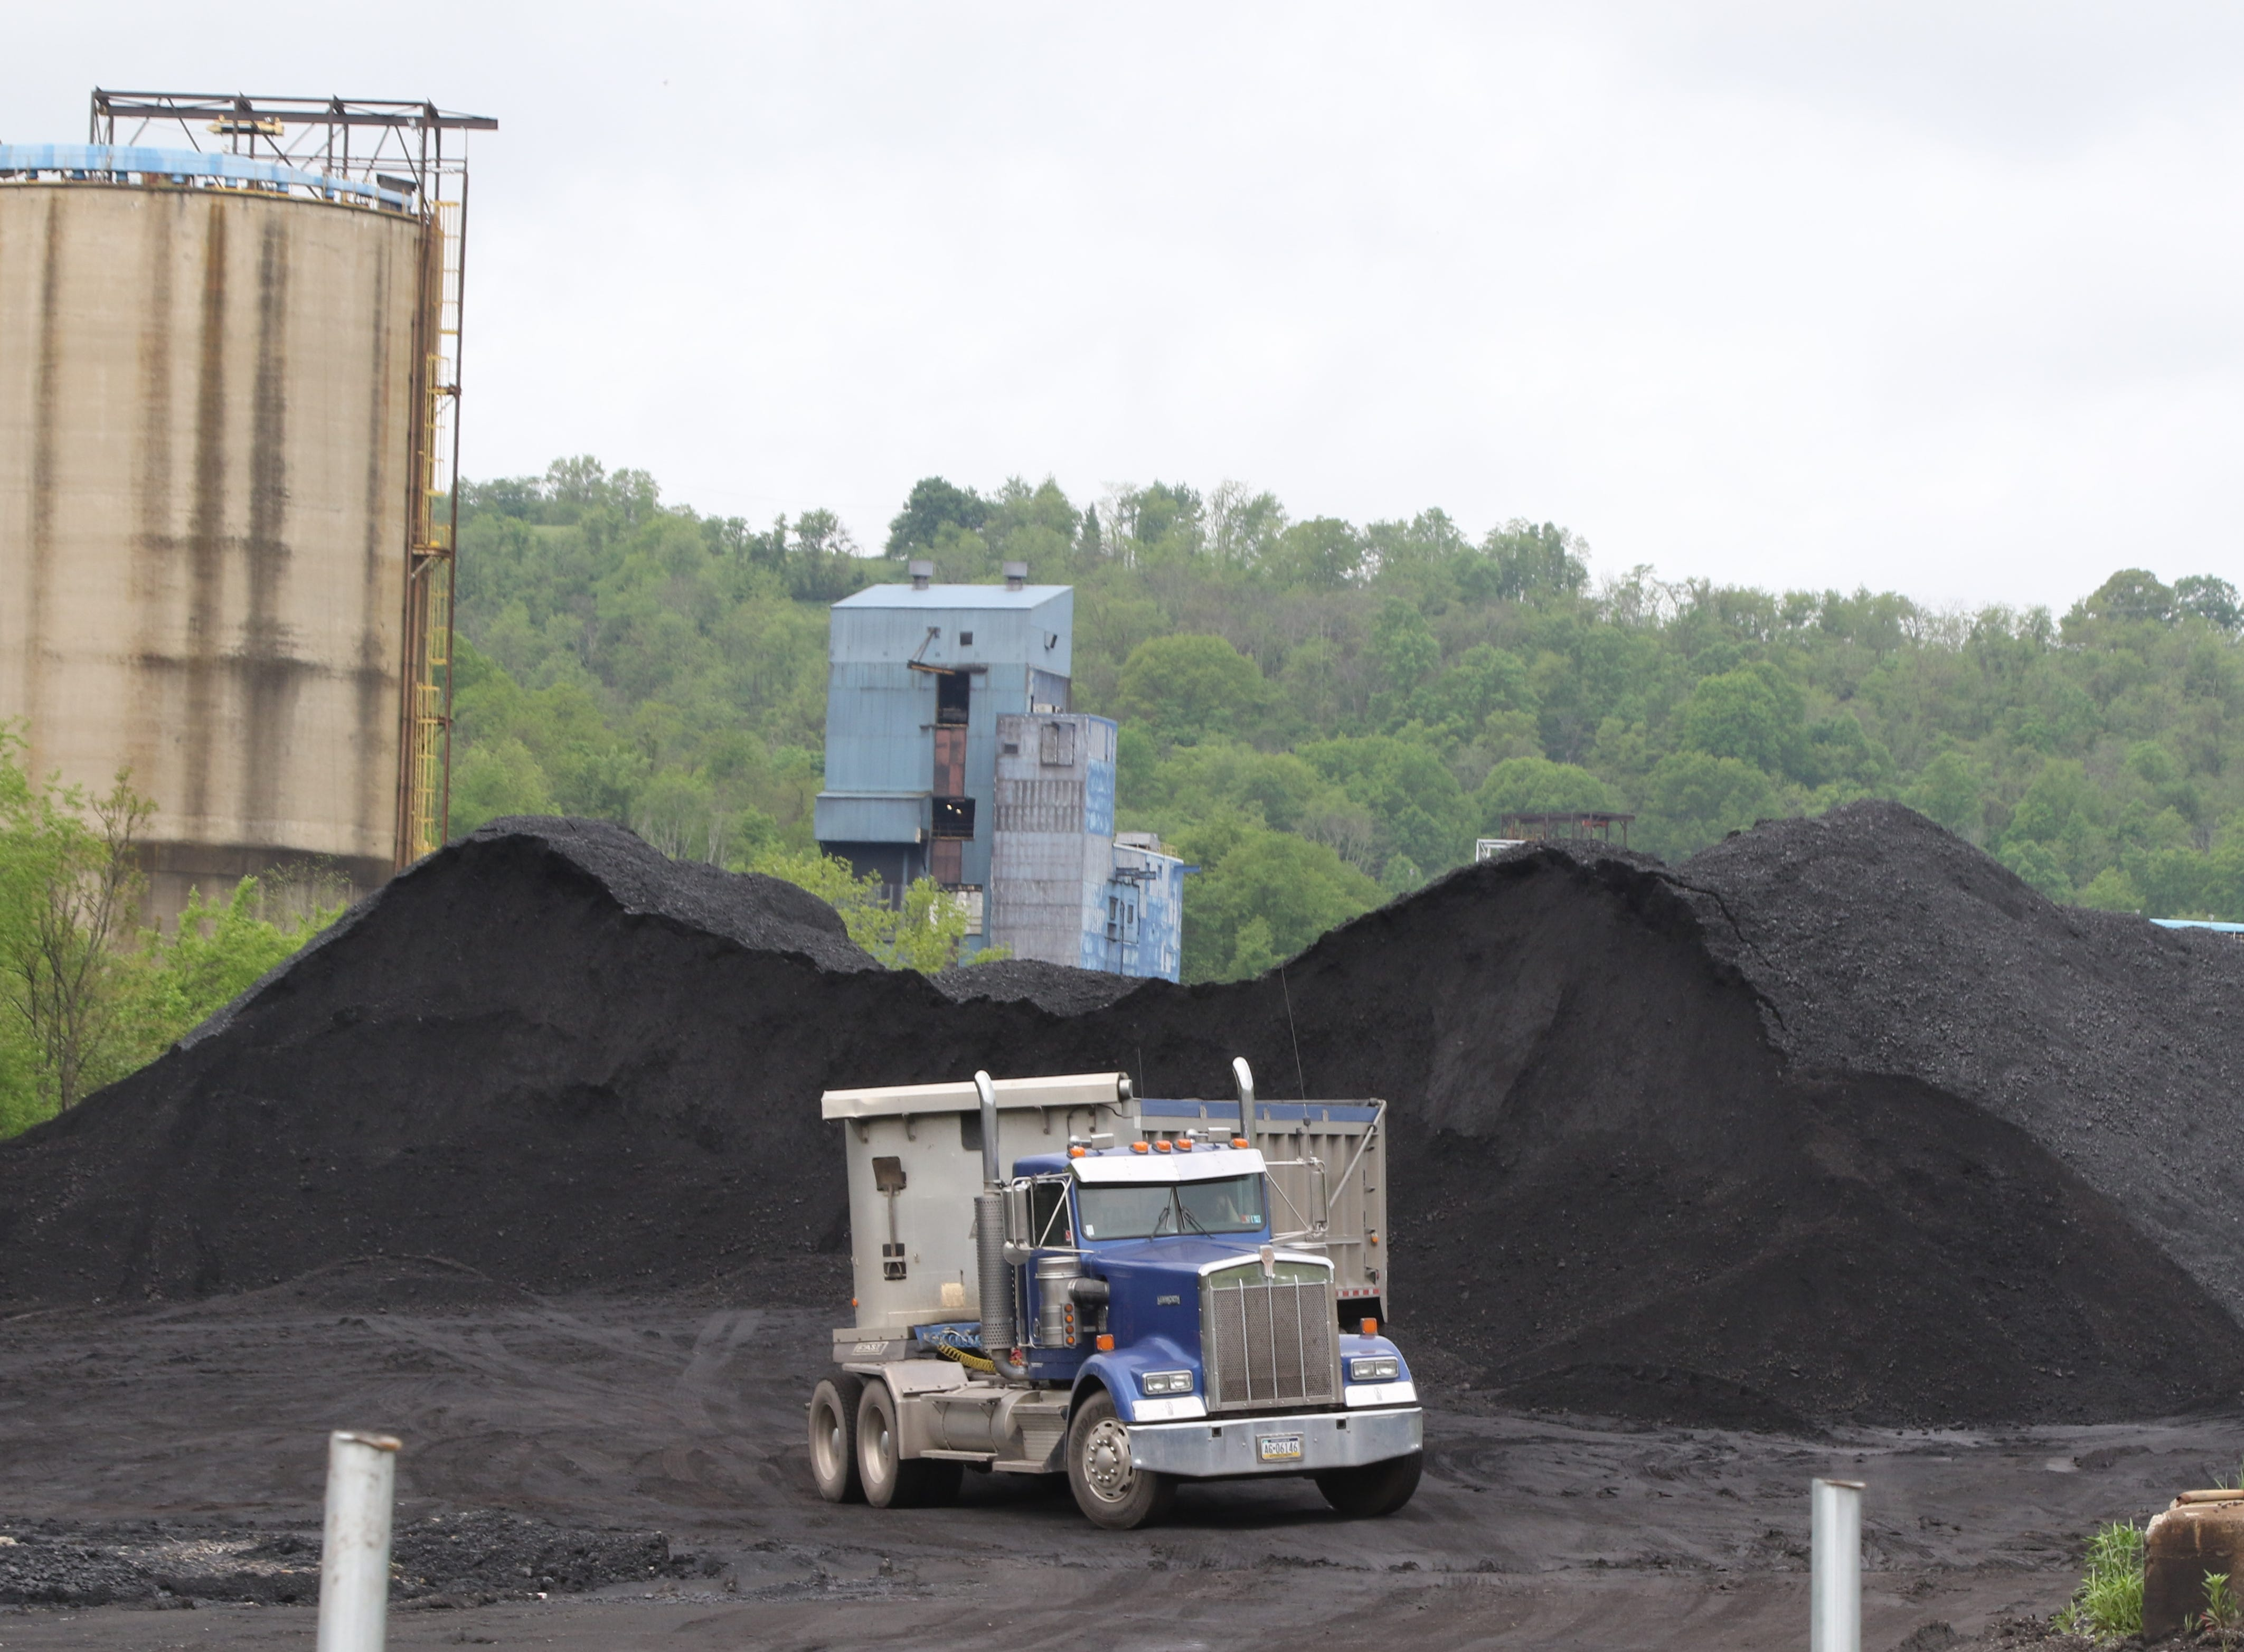 A pile of processed coal at the Cumberland Coal Mine, where trucks come to take it away.